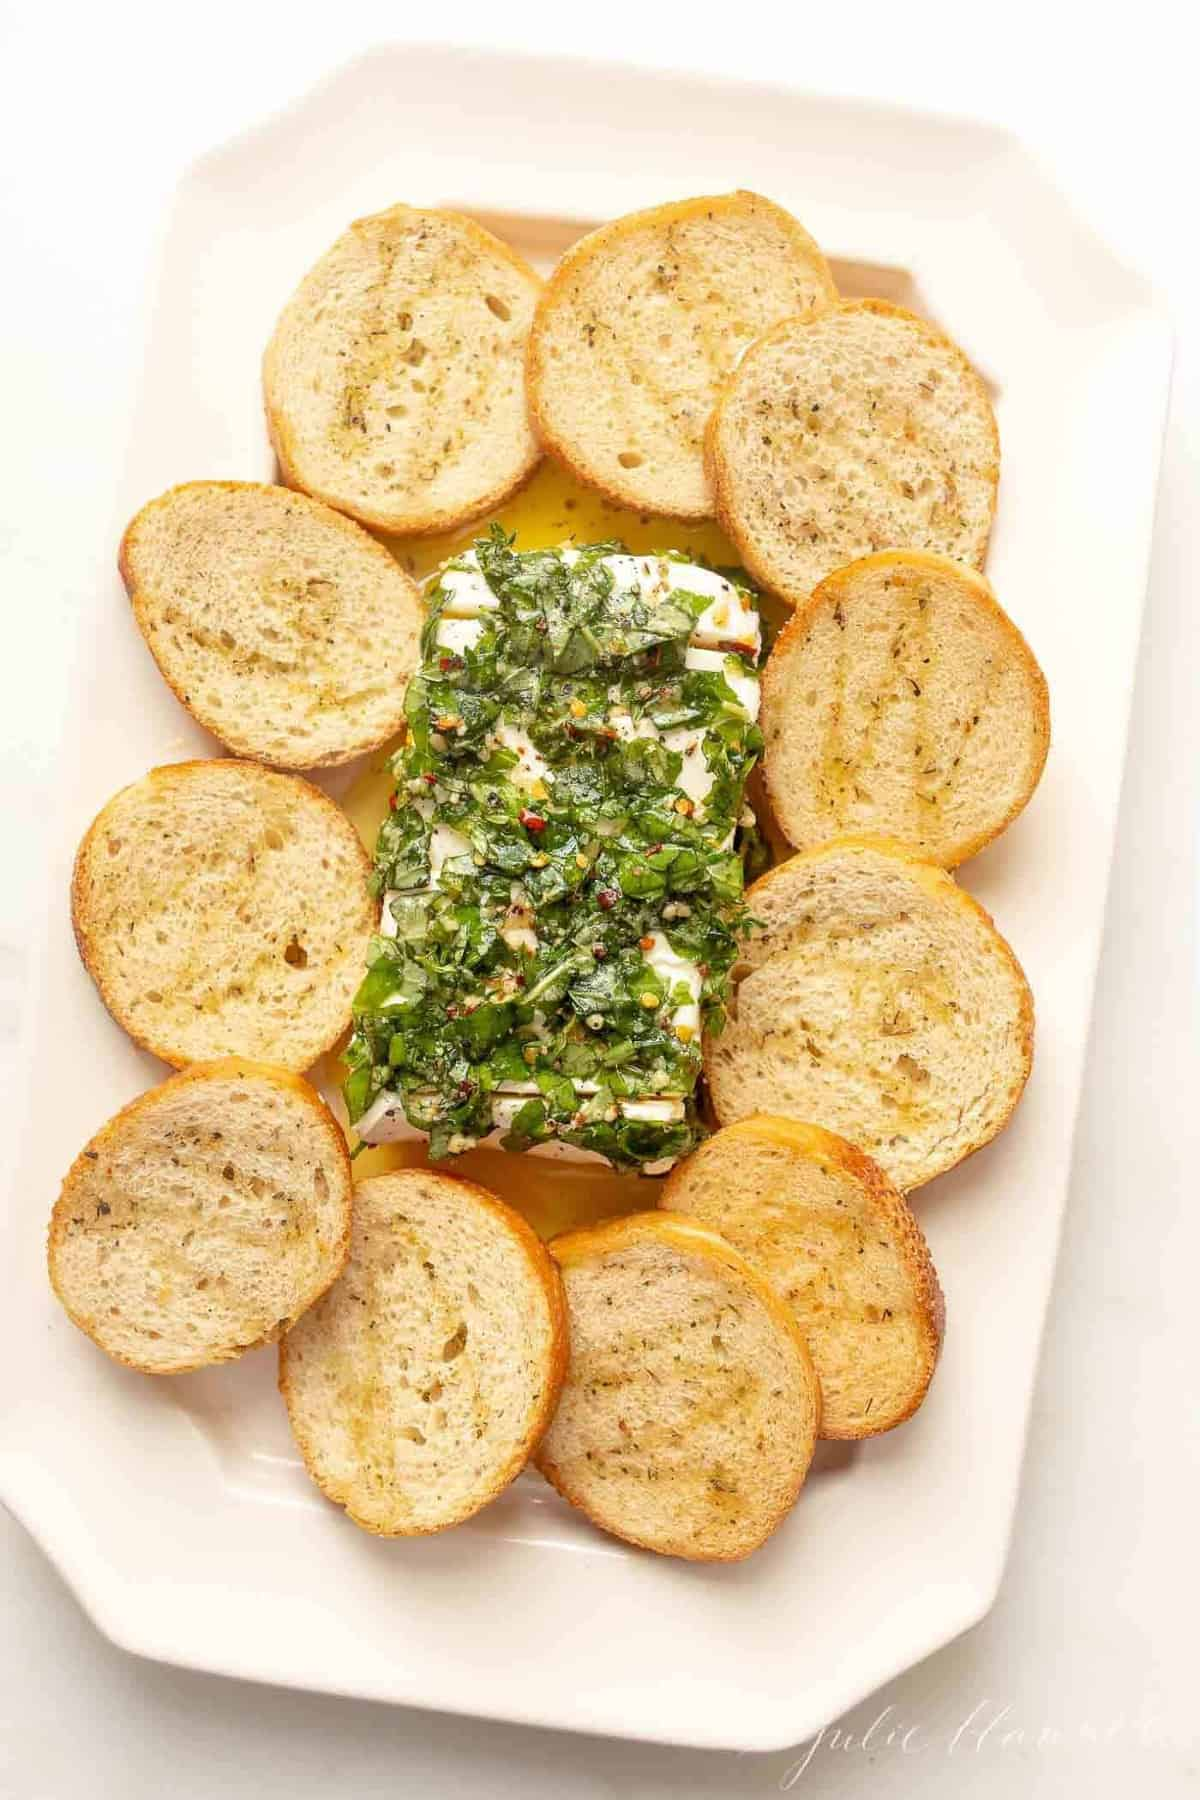 Marinated cheese surrounded by crostini on a white platter.